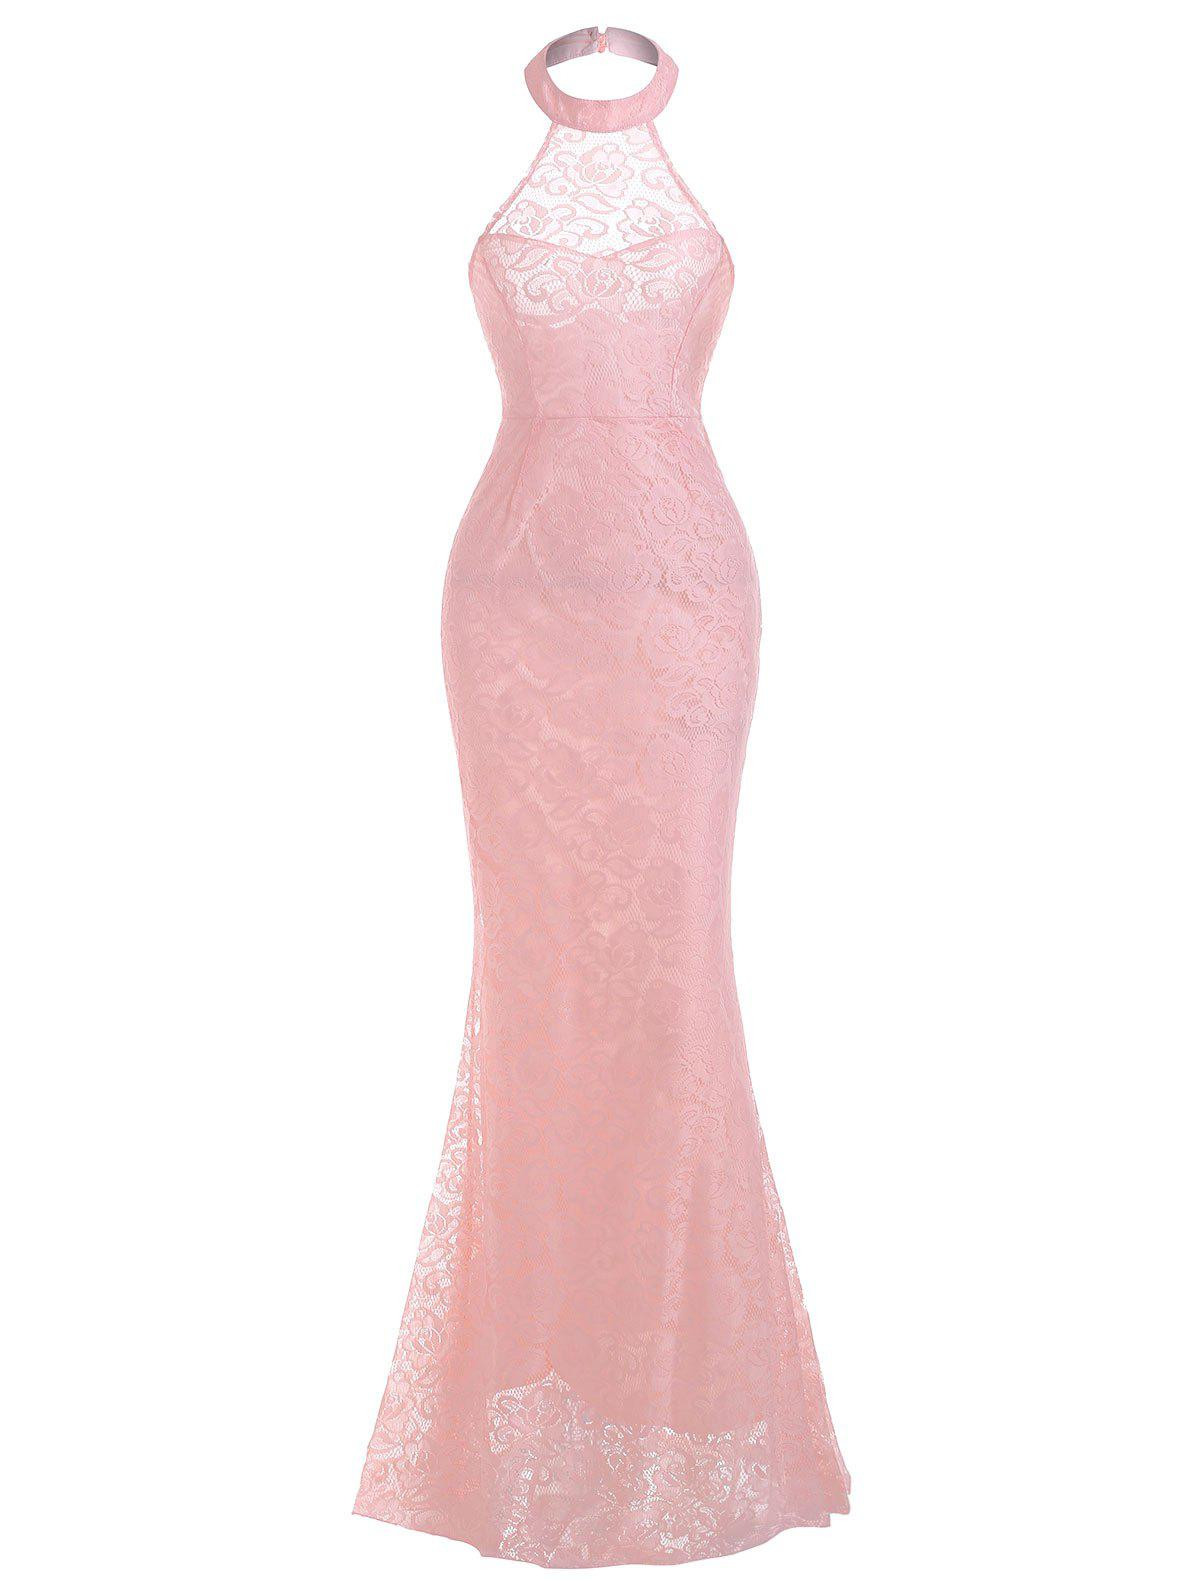 Halter Lace Evening Mermaid Dress - PINK M